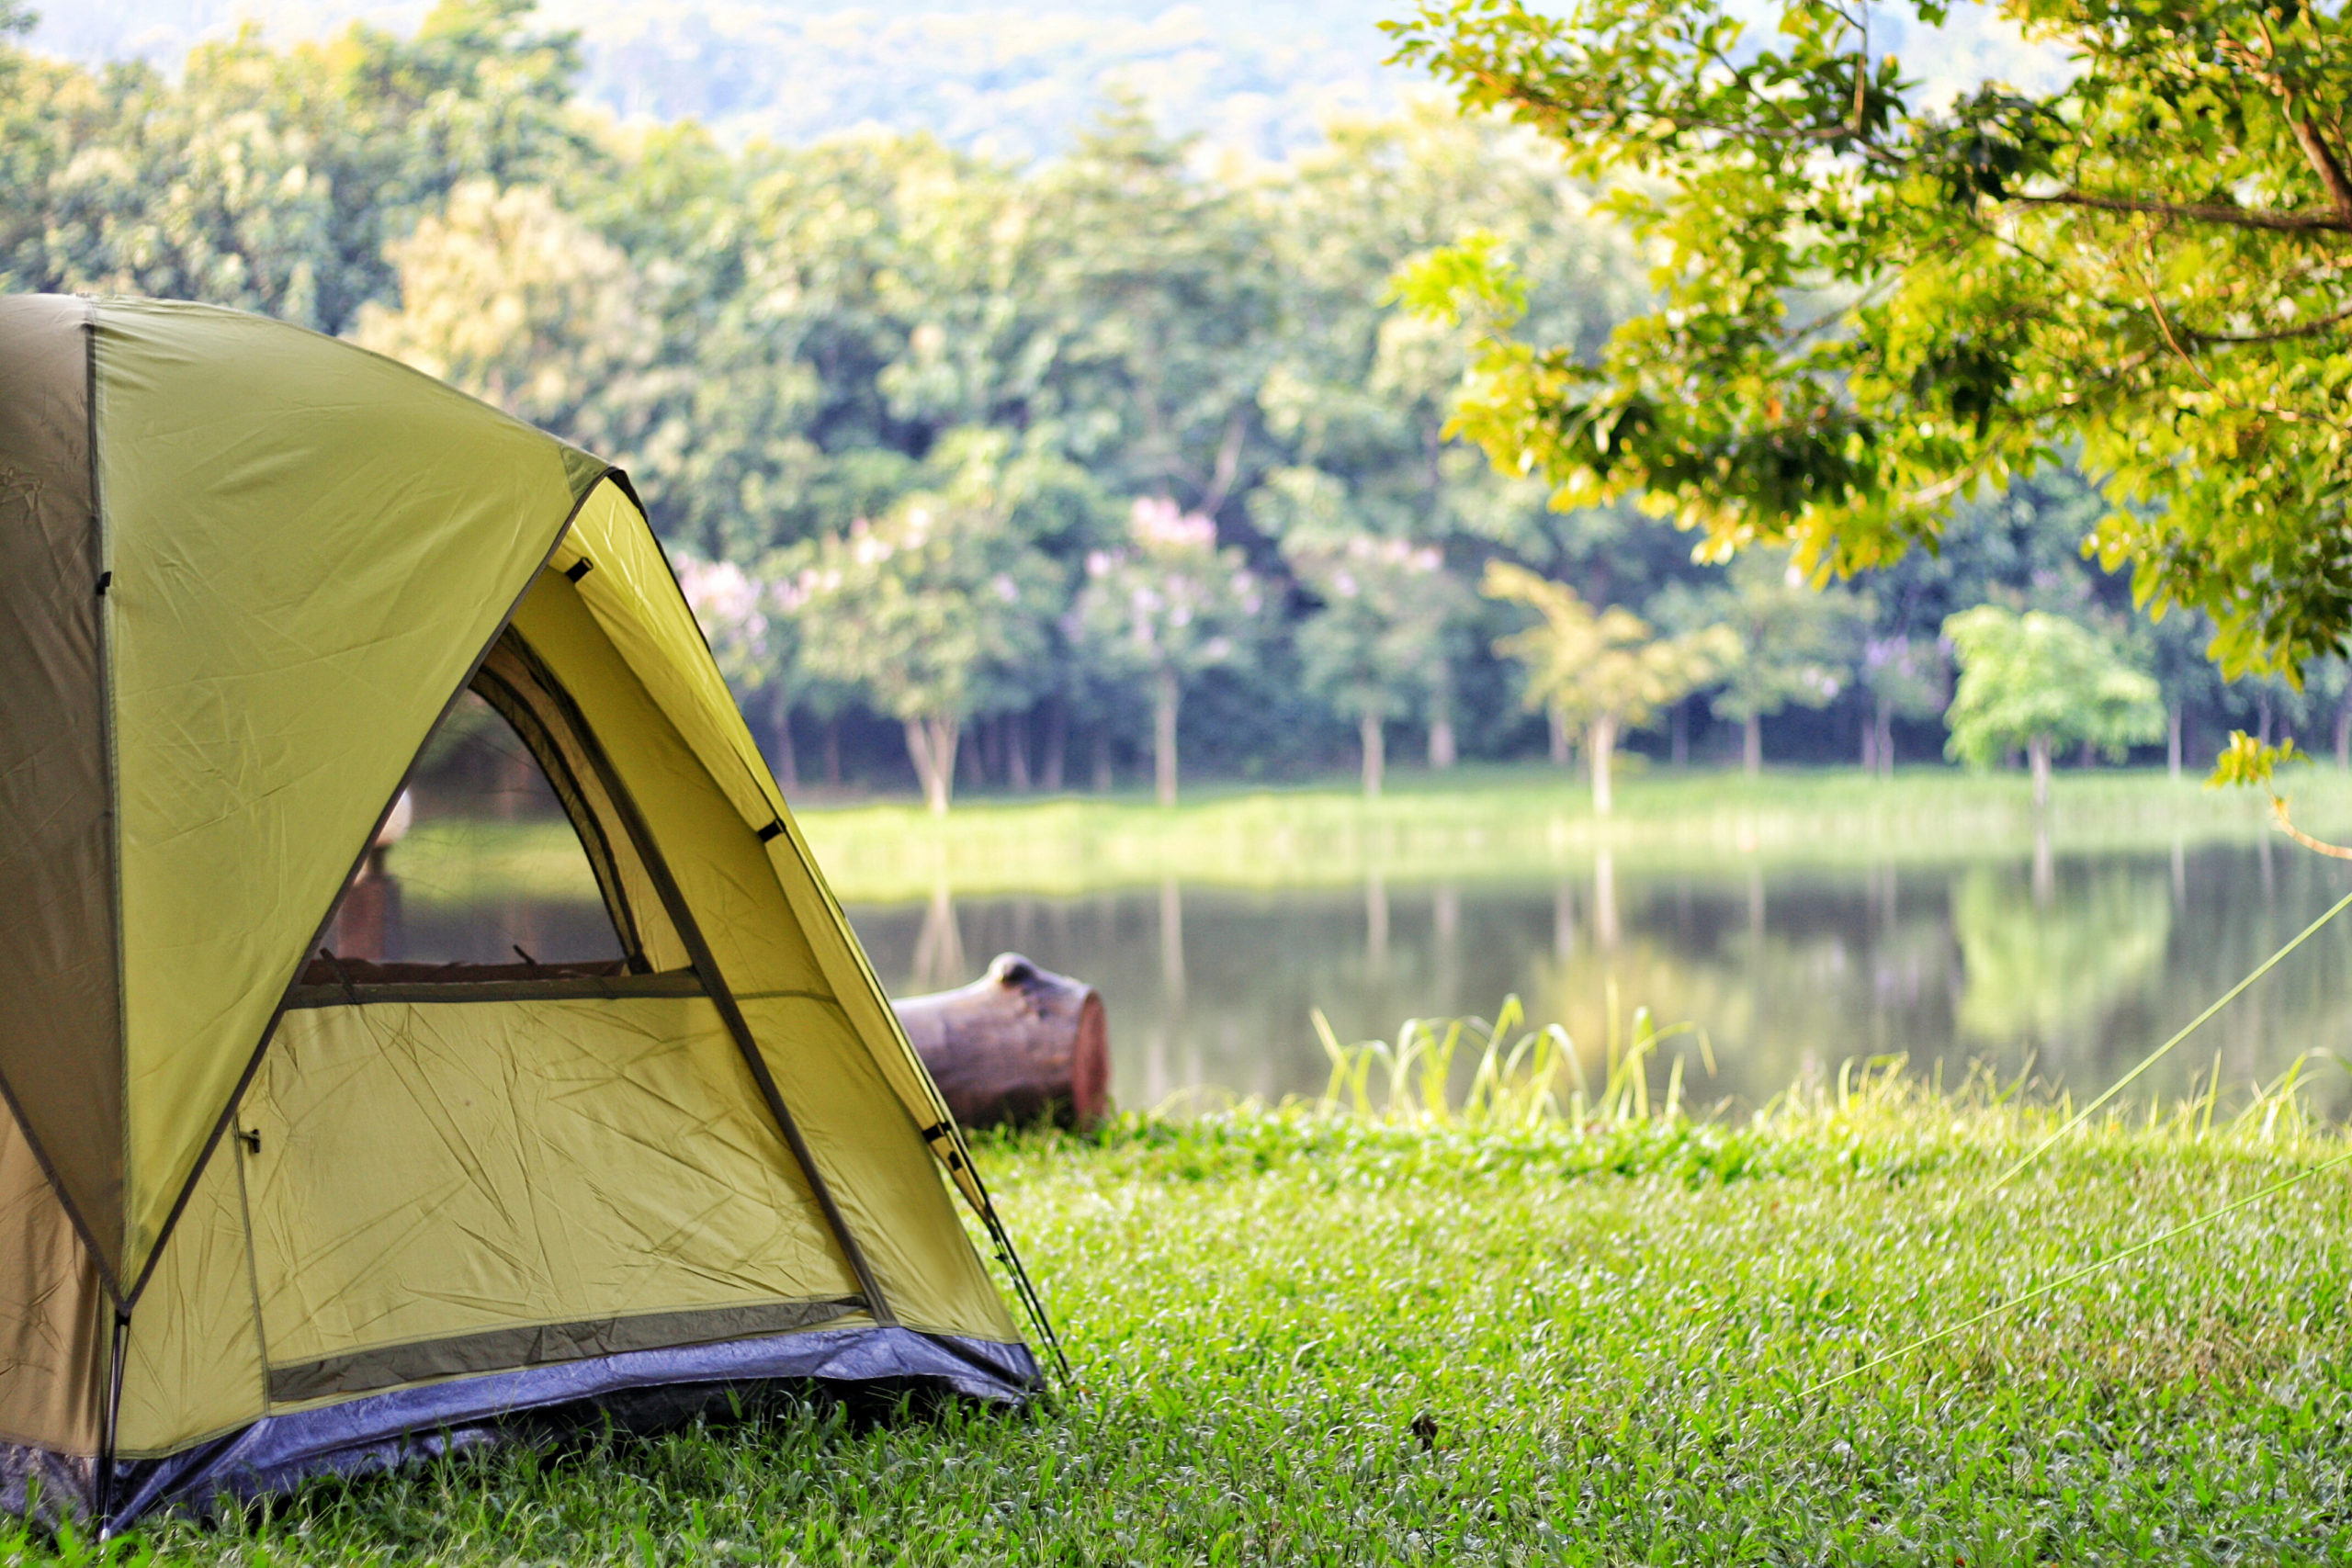 Campsite reservations for BC Parks open on March 8